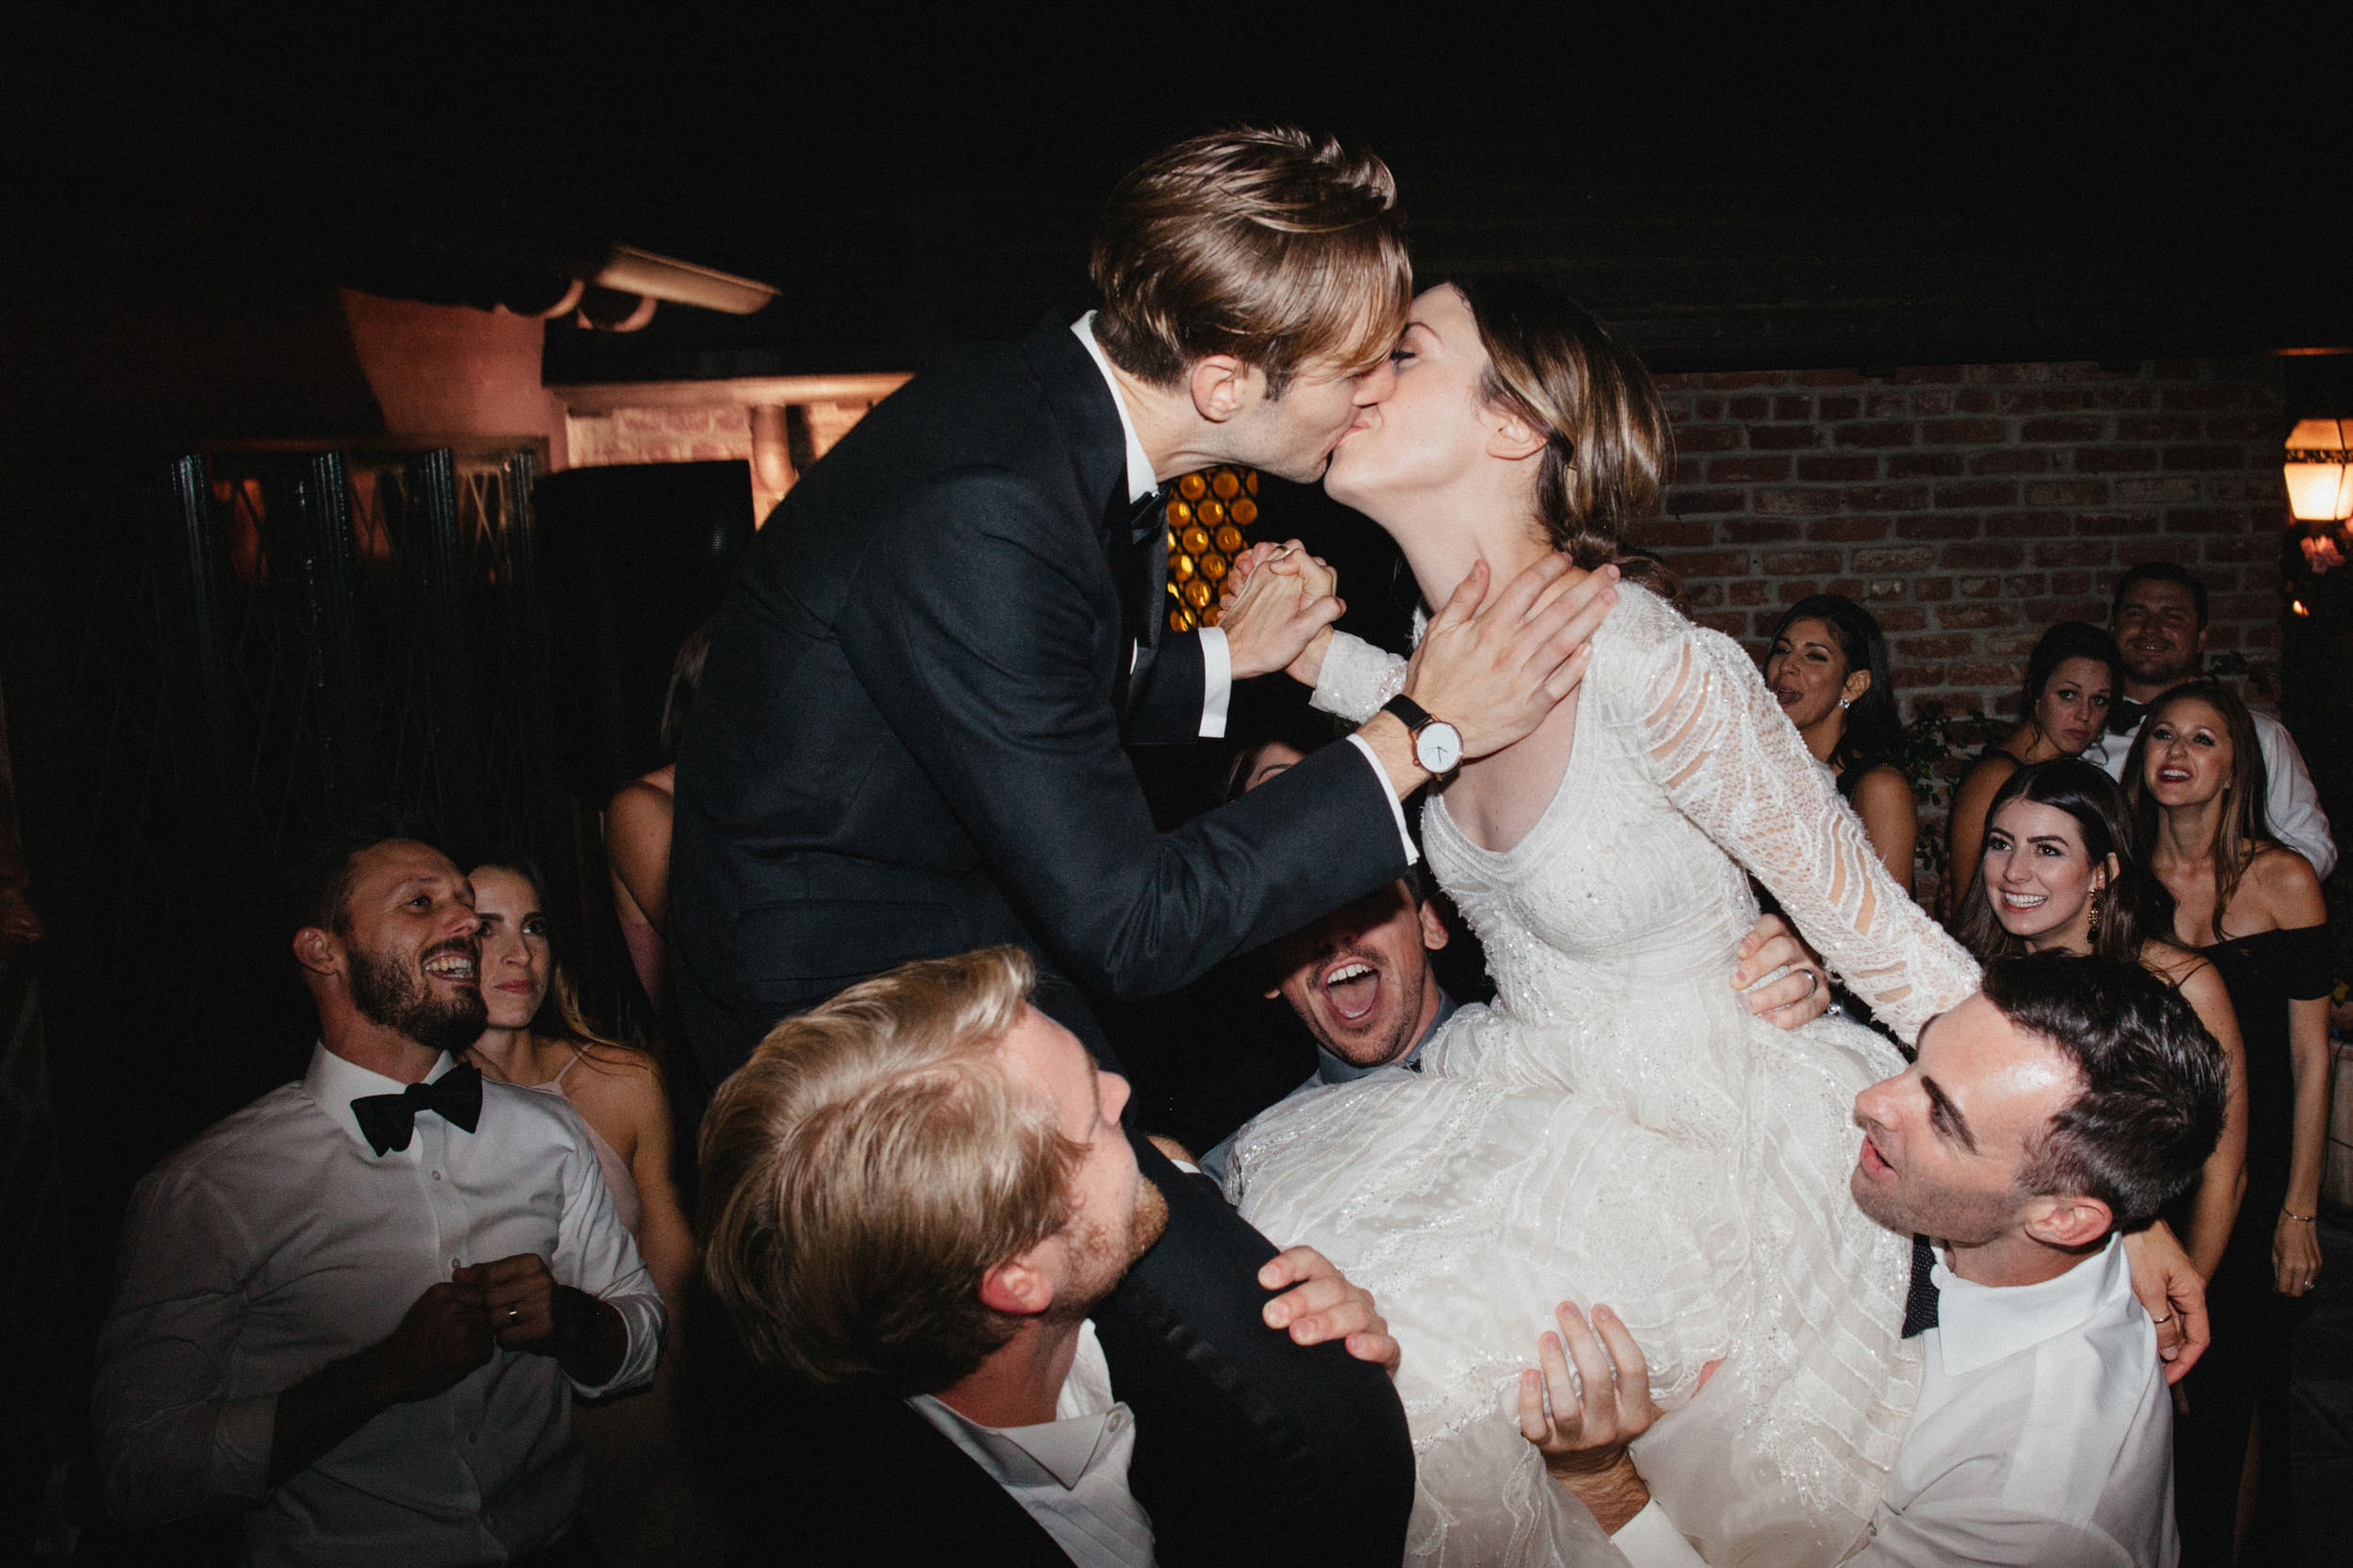 Bride+and+Groom+Lifted+in+Air.jpg